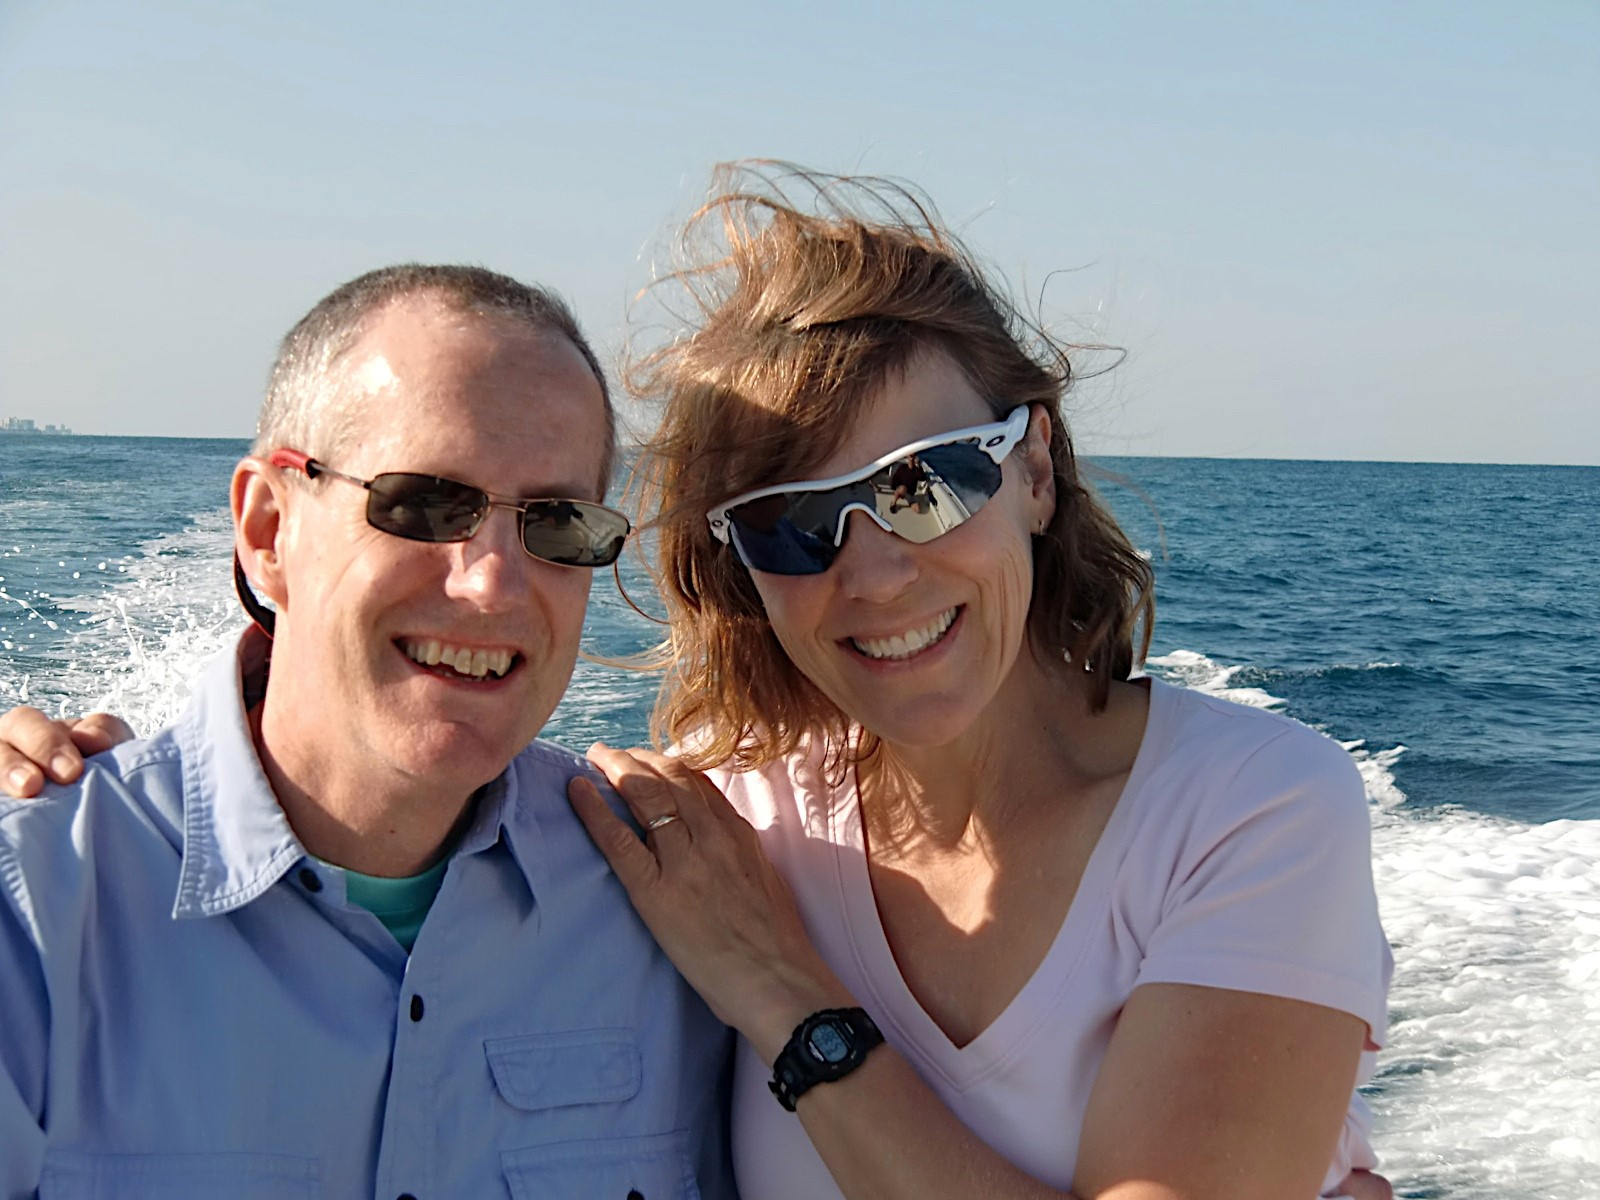 After a sailboat boom hit his face and fractured his nose and several bones around his eye socket, Bob Ensor was treated by two plastic surgeons. He didn't realize they weren't in his insurance network. He and his wife, Linda, faced more than $167,000 in charges.